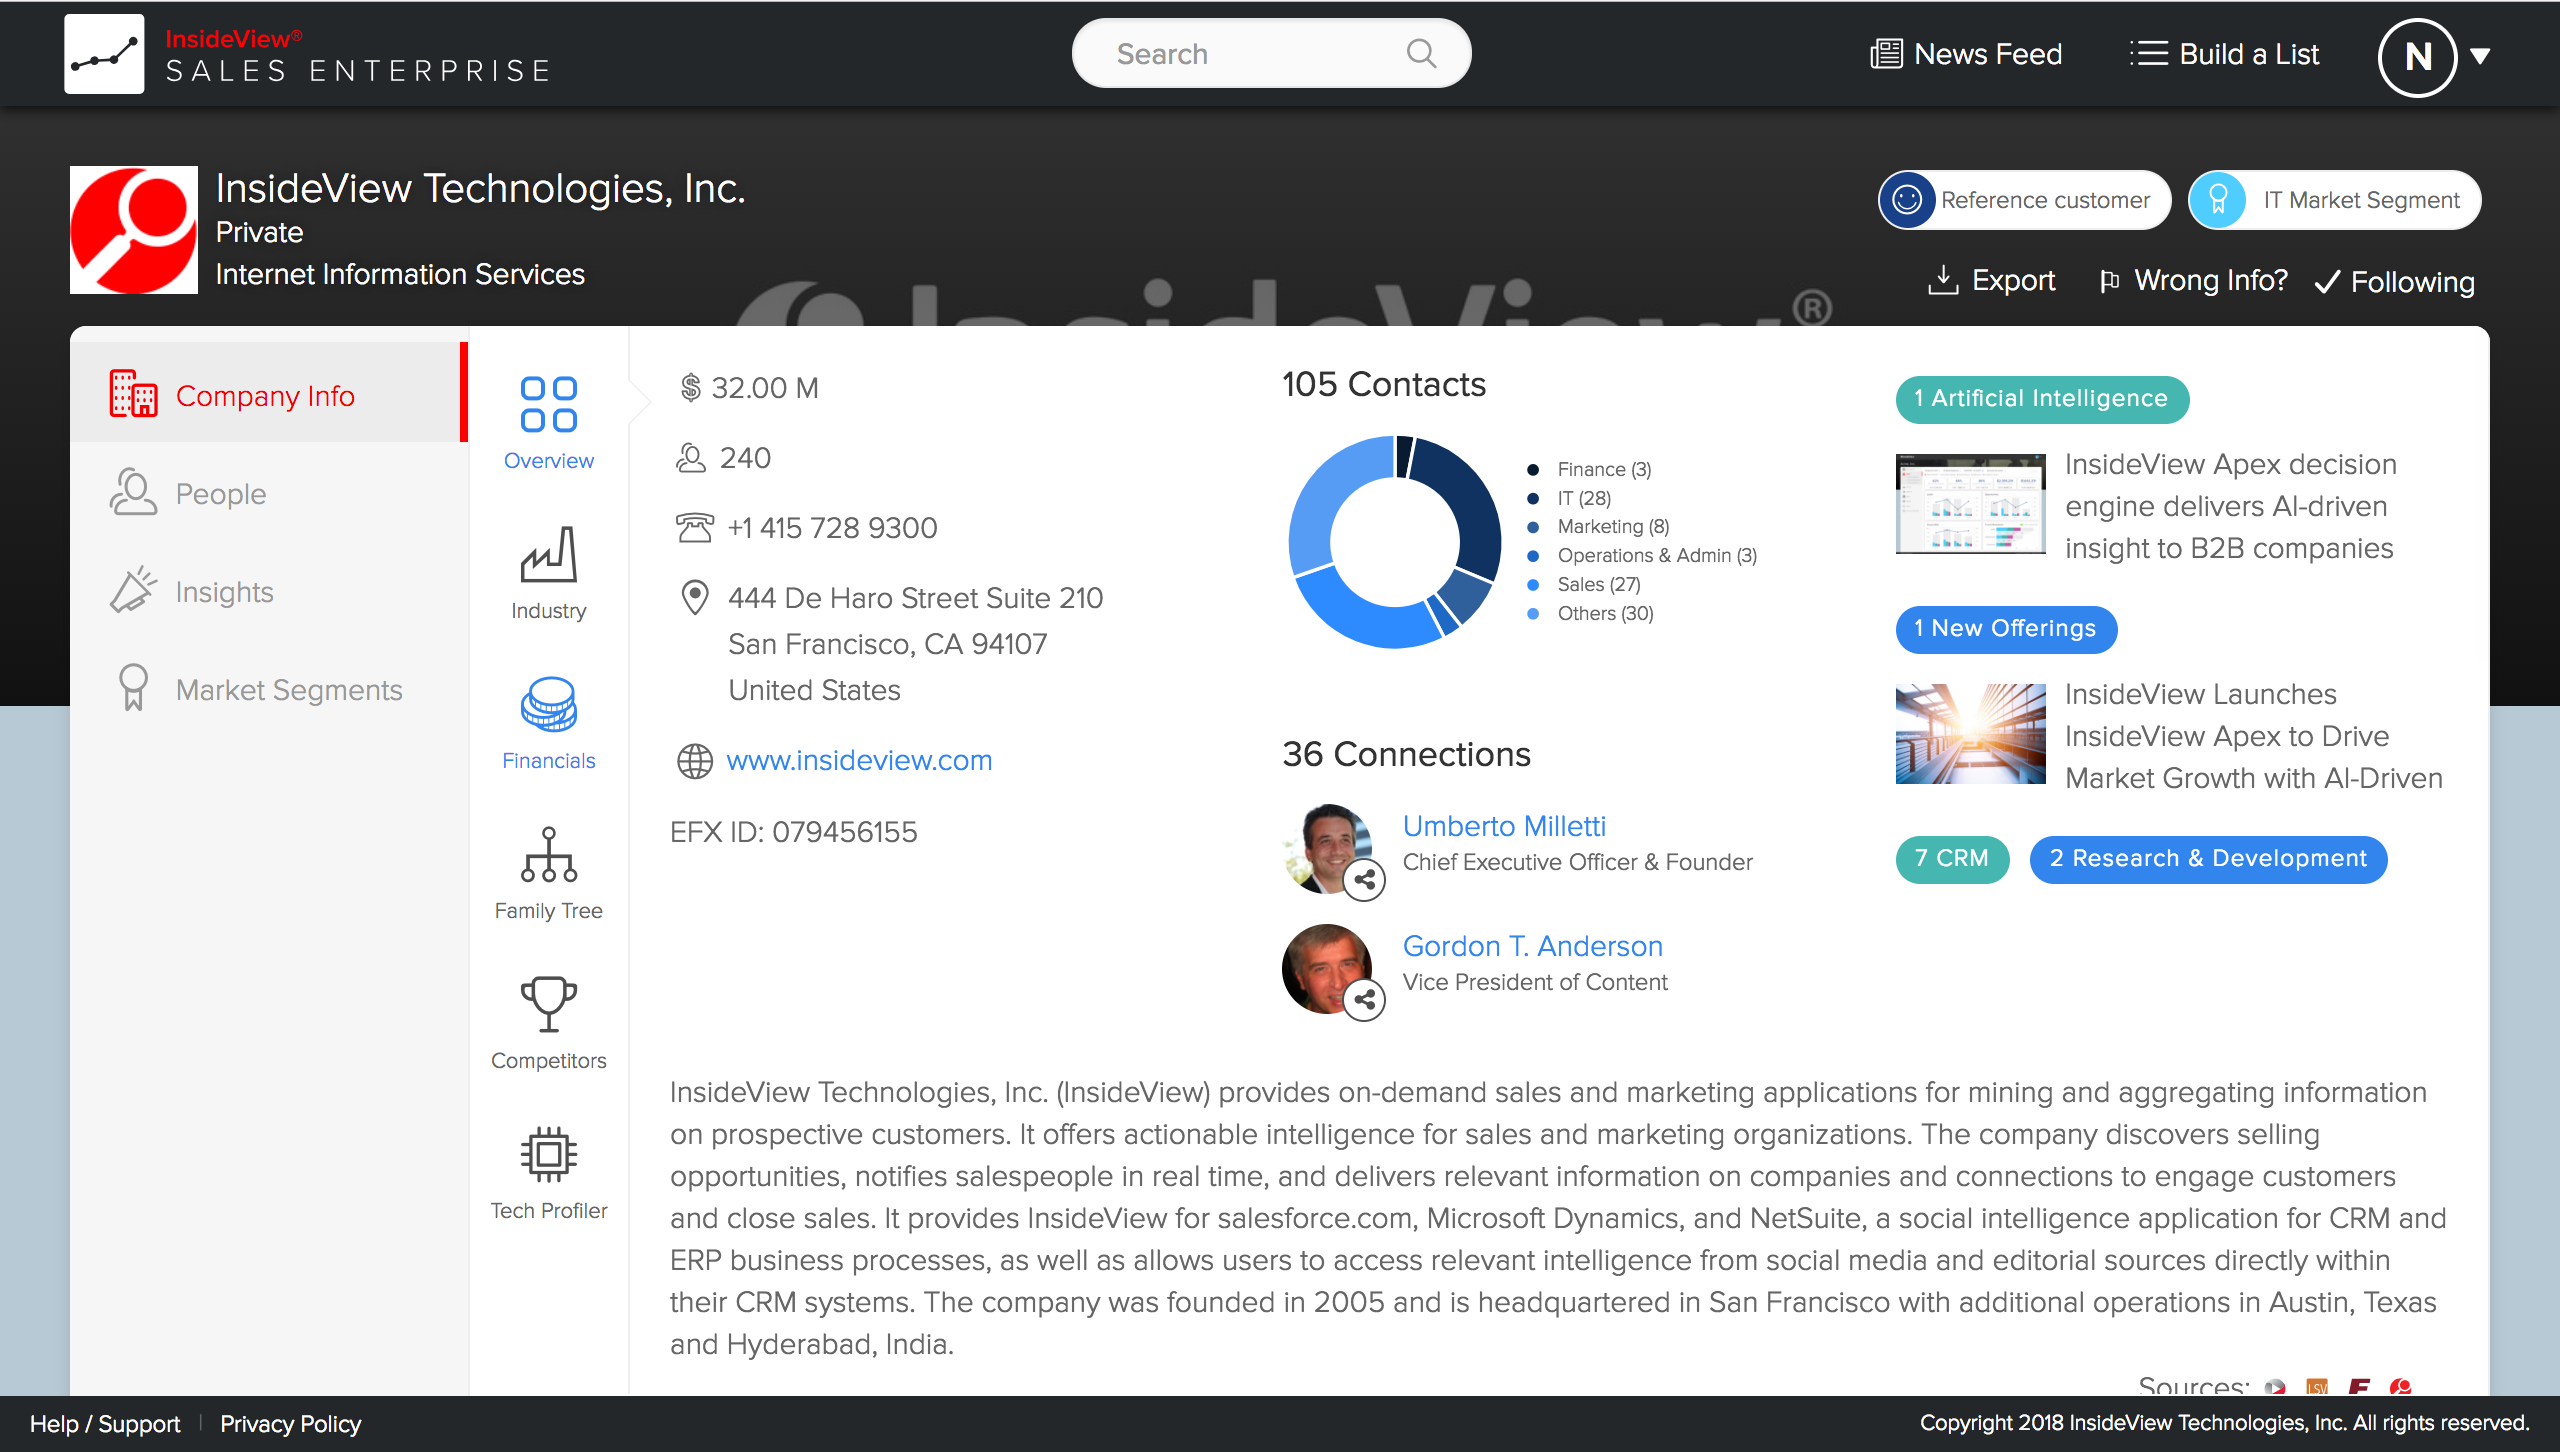 InsideView Company and People Insights